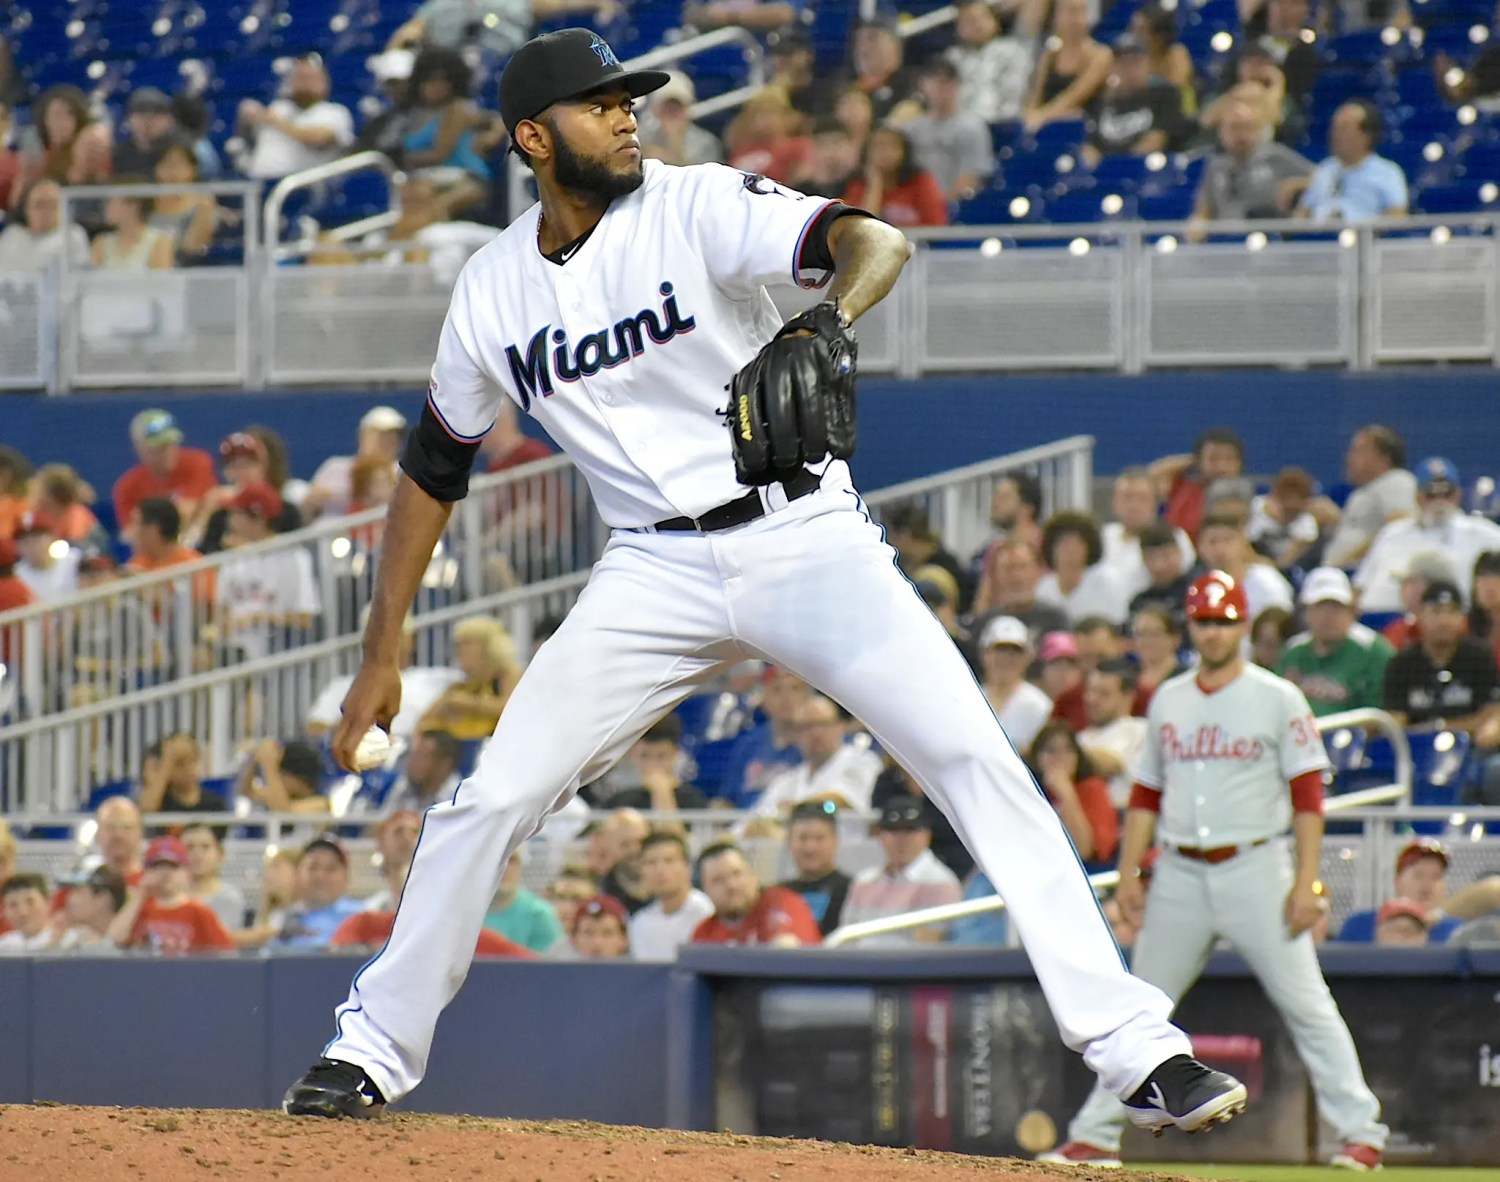 Marlins arms shine at times, but first month a struggle